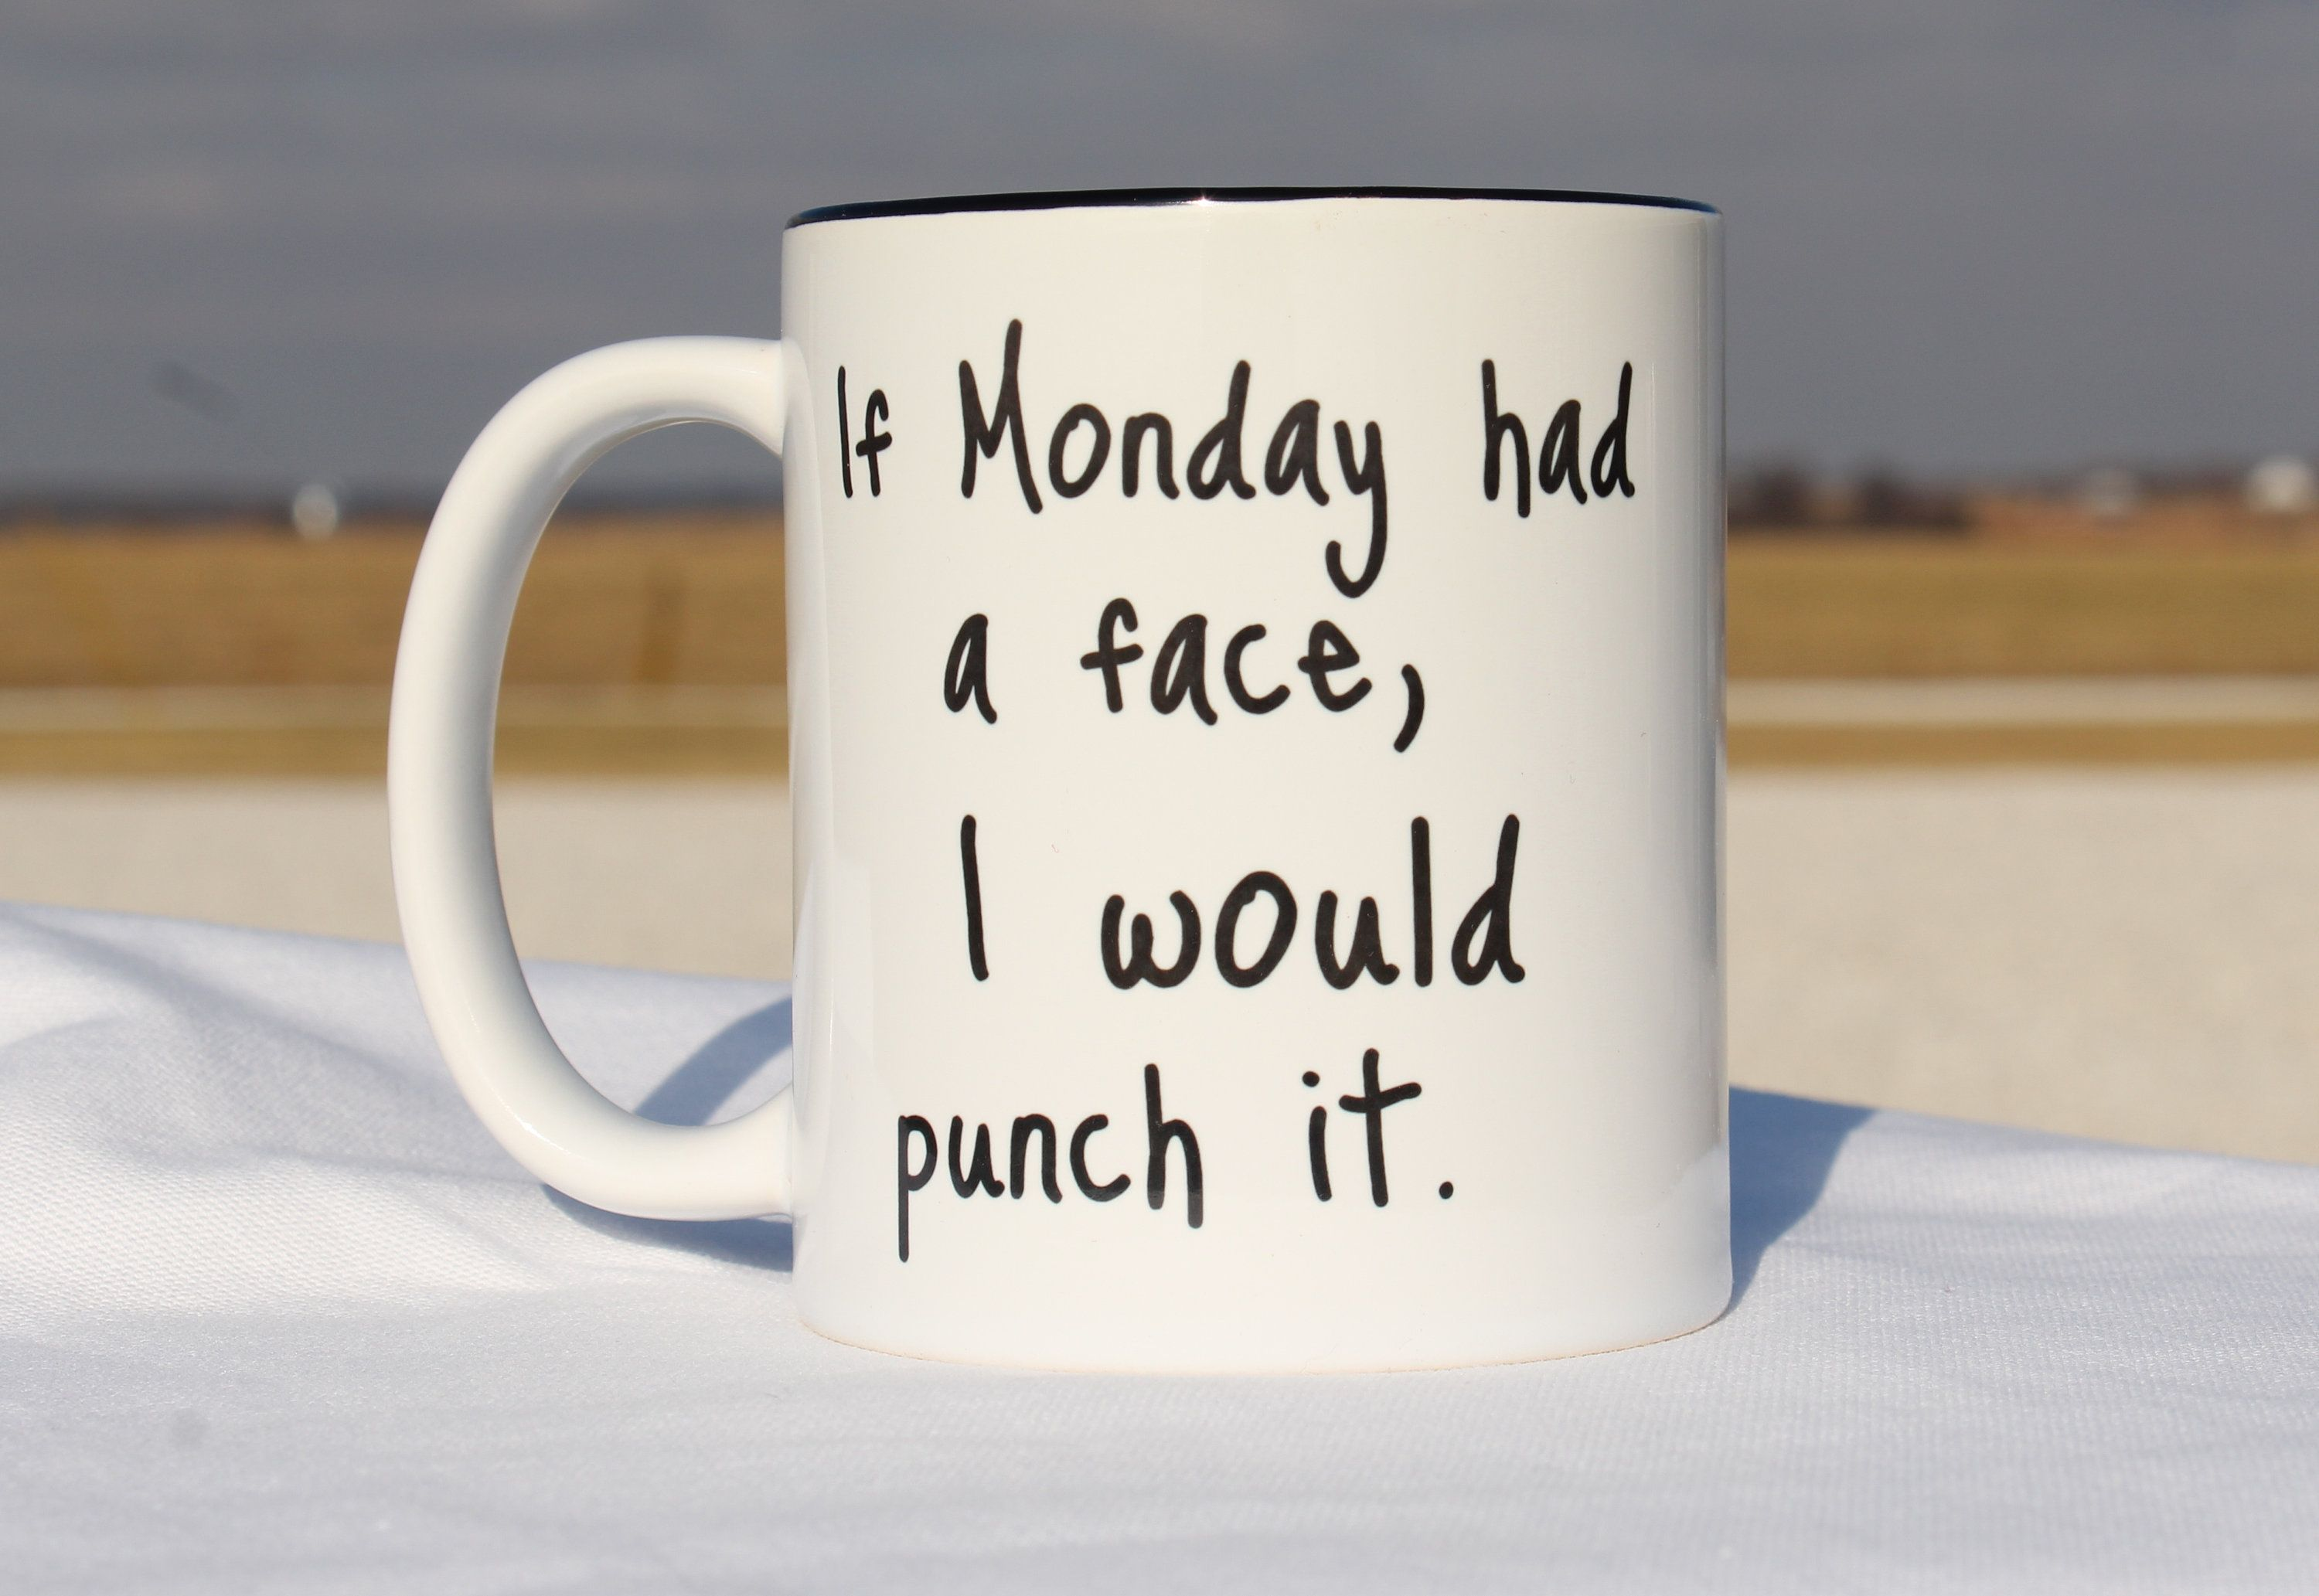 Funny Coffee Mugs,Funny Coffee Cup,If Monday Had a Face I Would Punch It,Funny Coffee Mugs for Women,Funny Coffee Mugs Work,Funny Mug